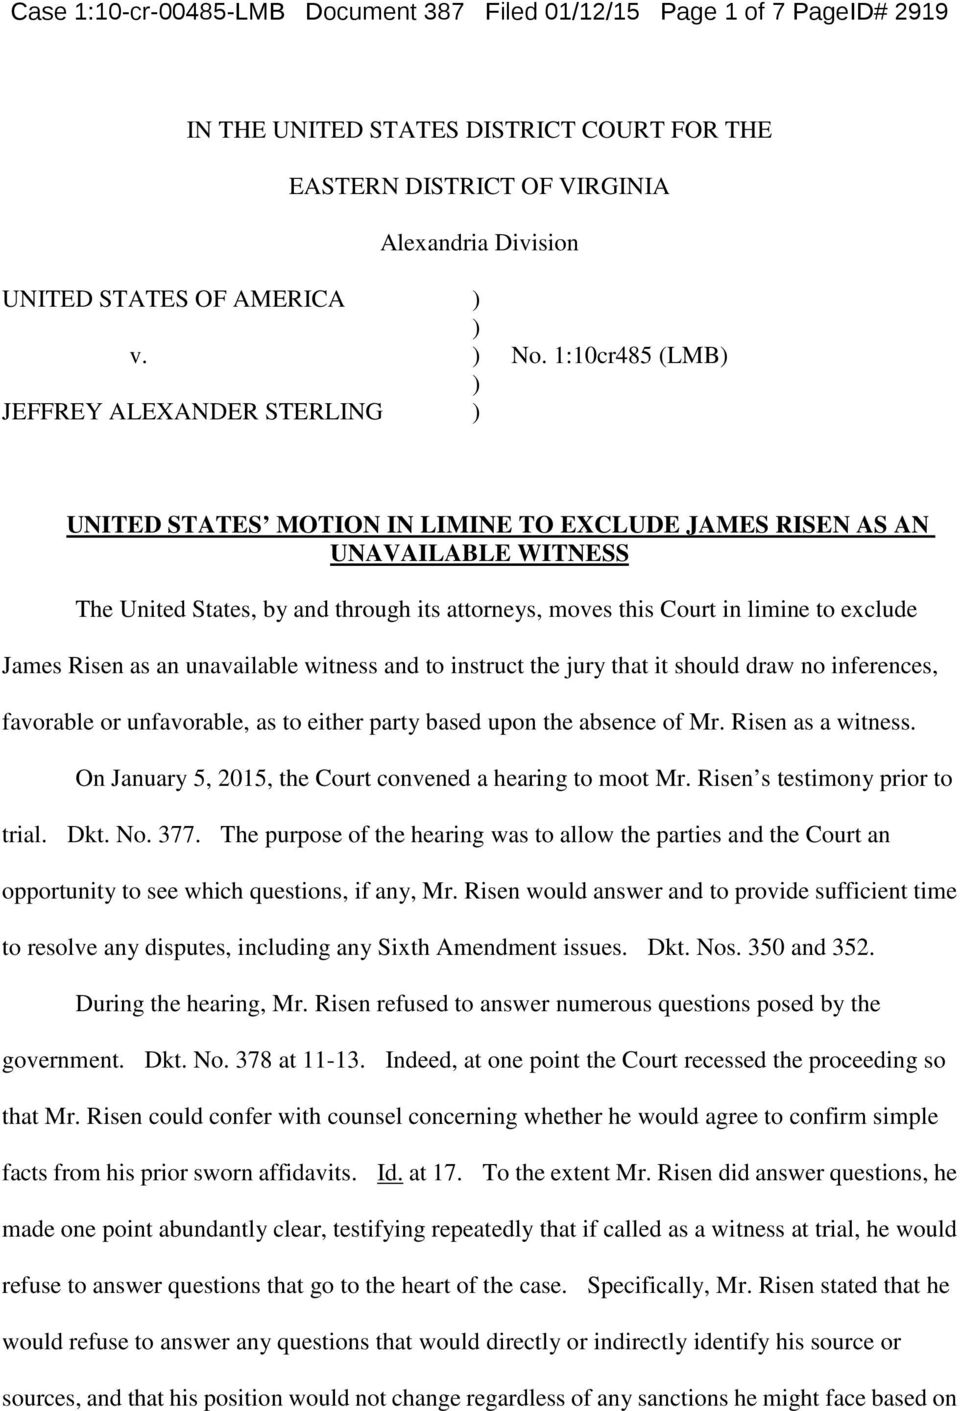 1:10cr485 (LMB UNITED STATES MOTION IN LIMINE TO EXCLUDE JAMES RISEN AS AN UNAVAILABLE WITNESS The United States, by and through its attorneys, moves this Court in limine to exclude James Risen as an